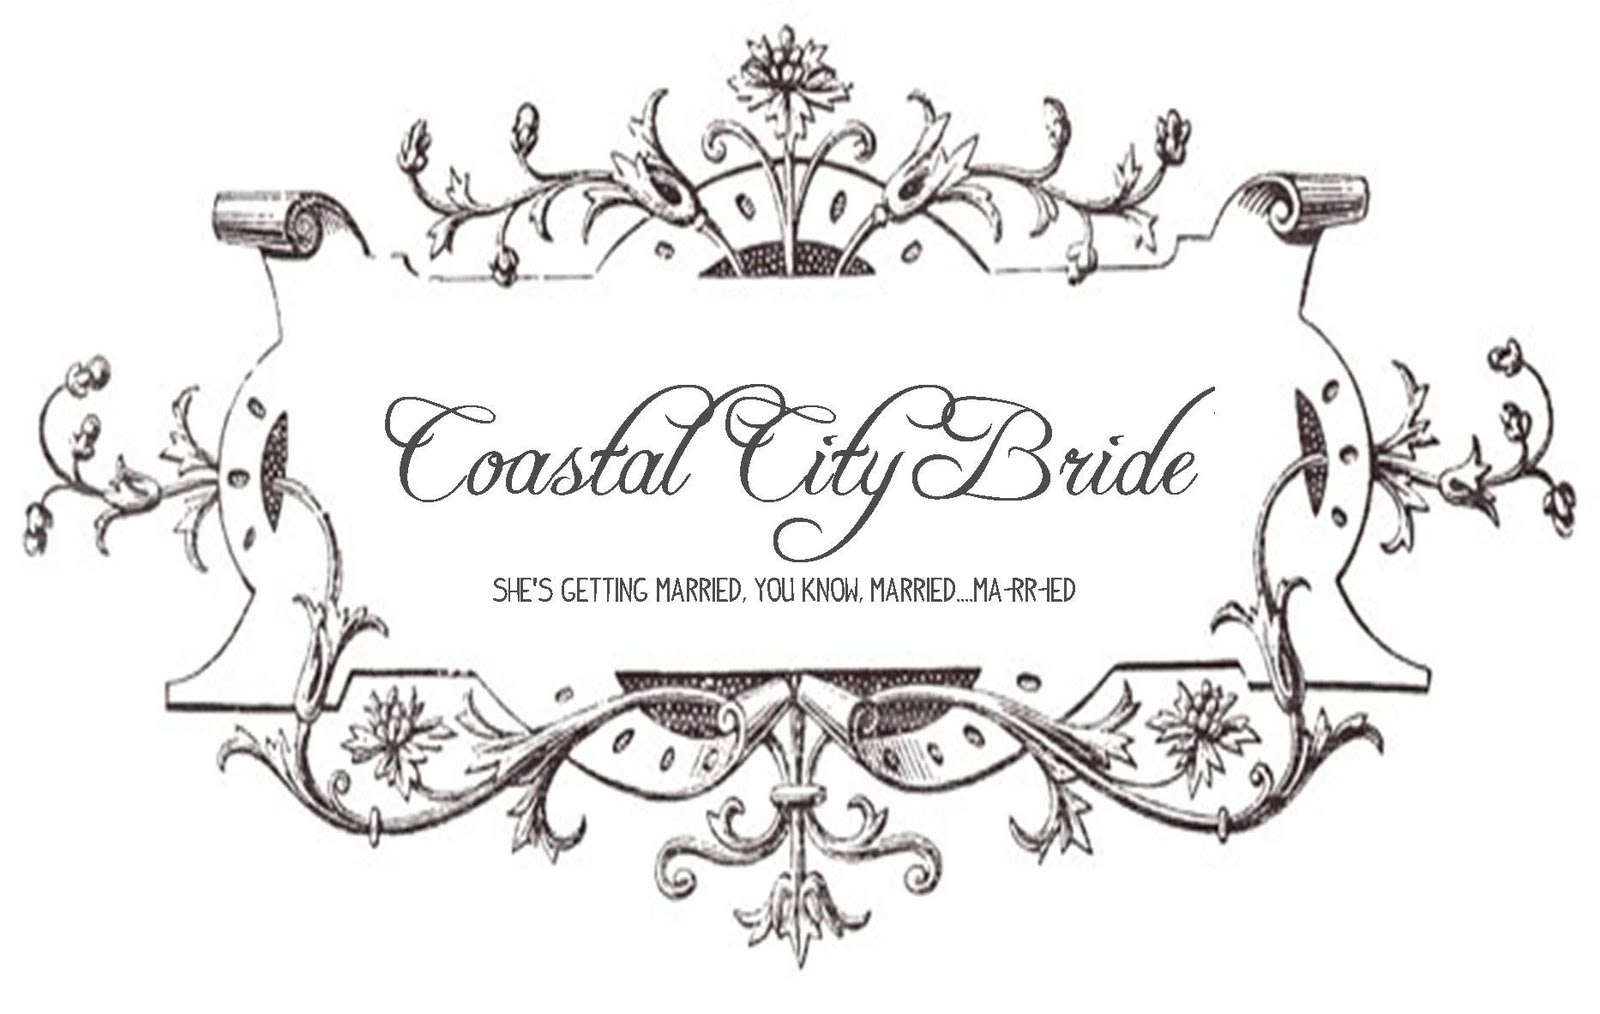 Coastal City Bride